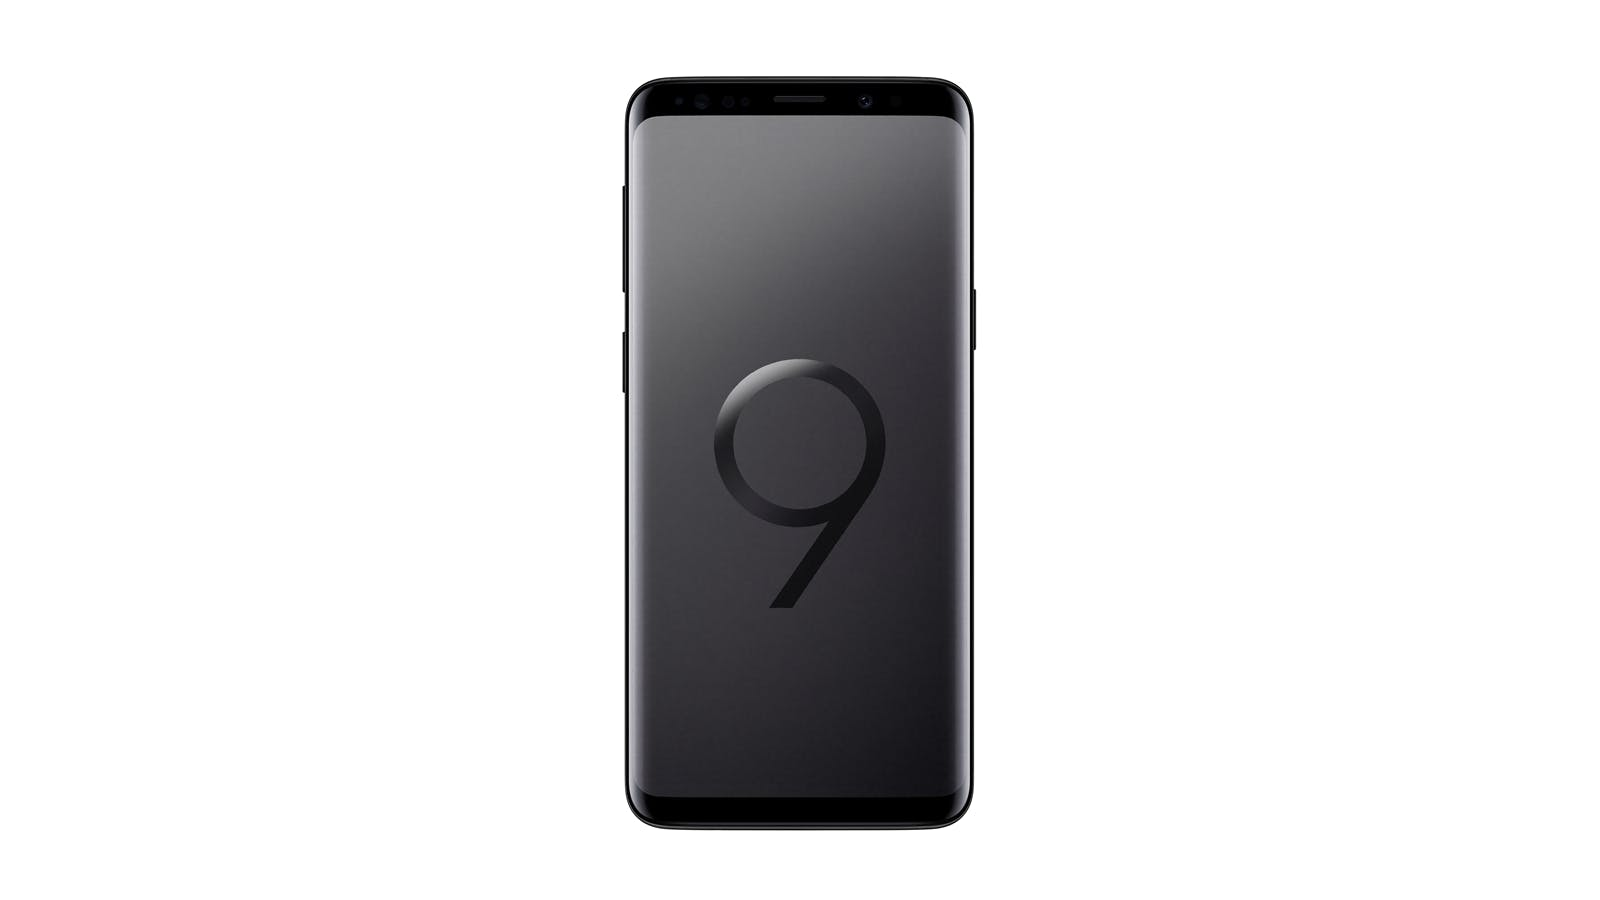 Samsung Galaxy S9 Smartphone - Midnight Black | Harvey Norman Malaysia